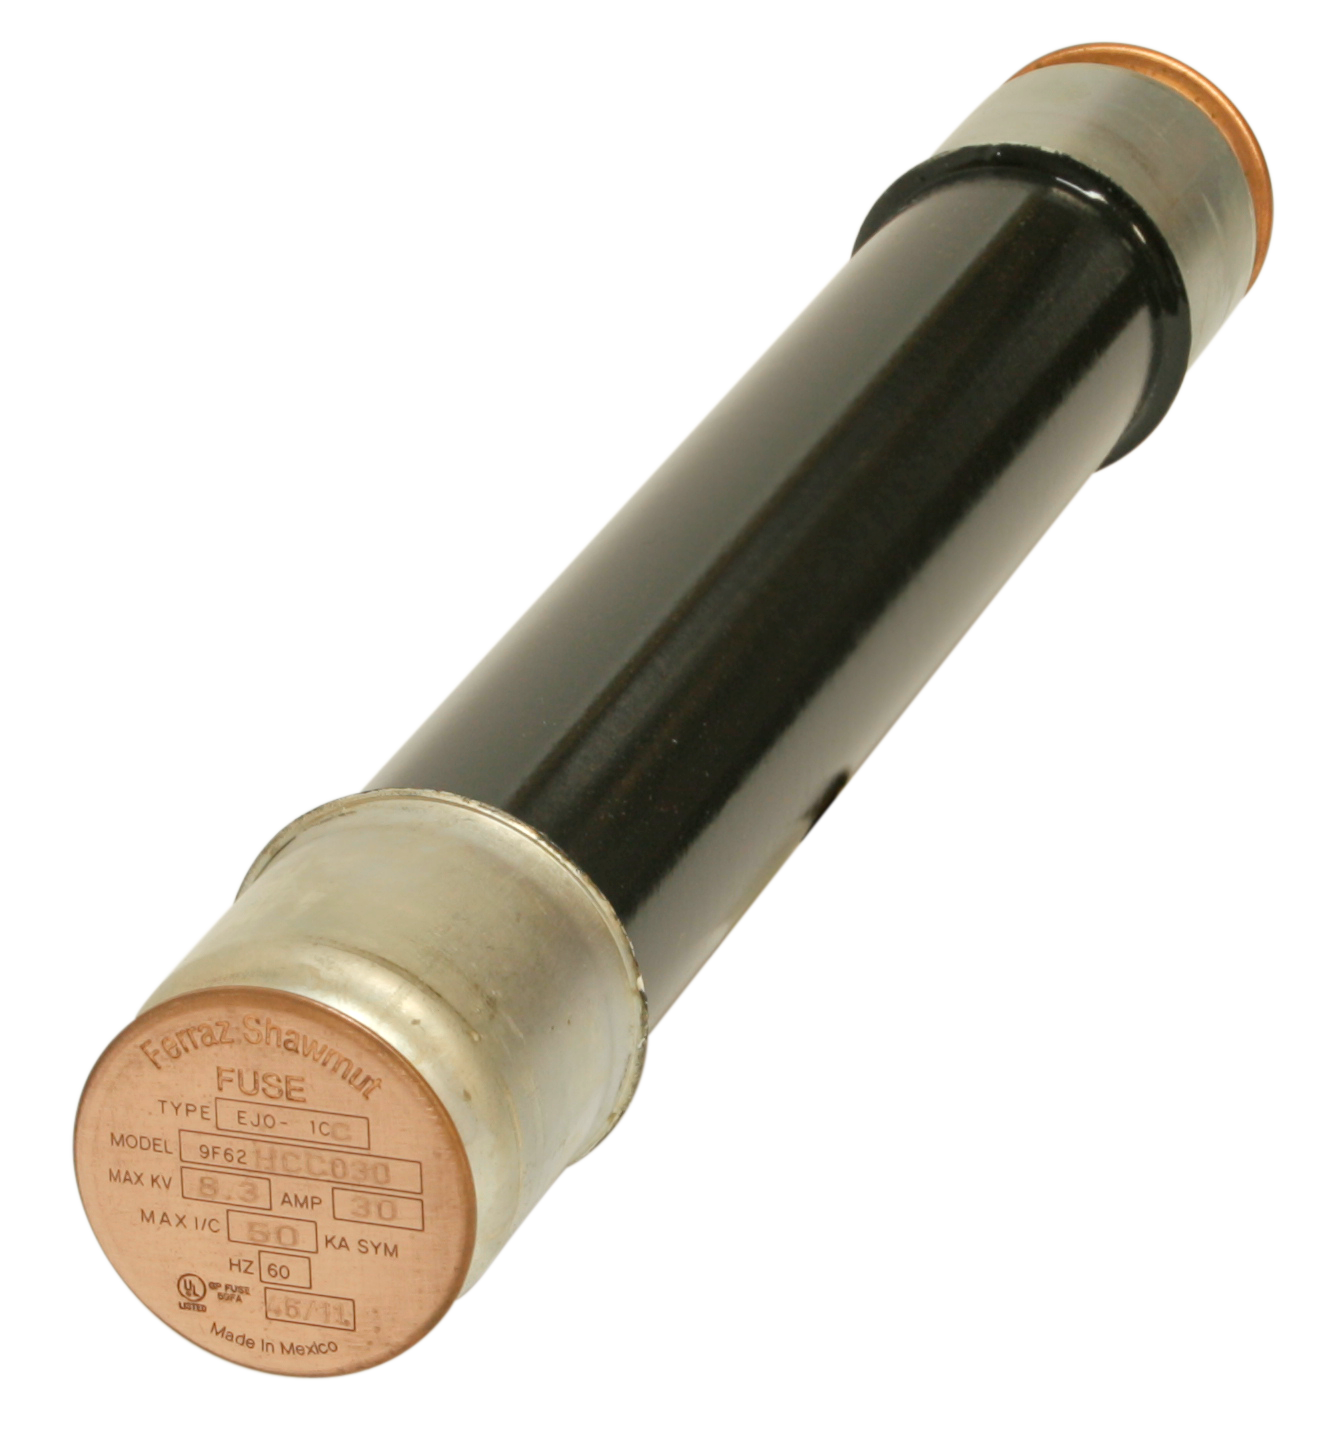 9F62DCC150 (GENERAL PURPOSE CL POWER FUSES)